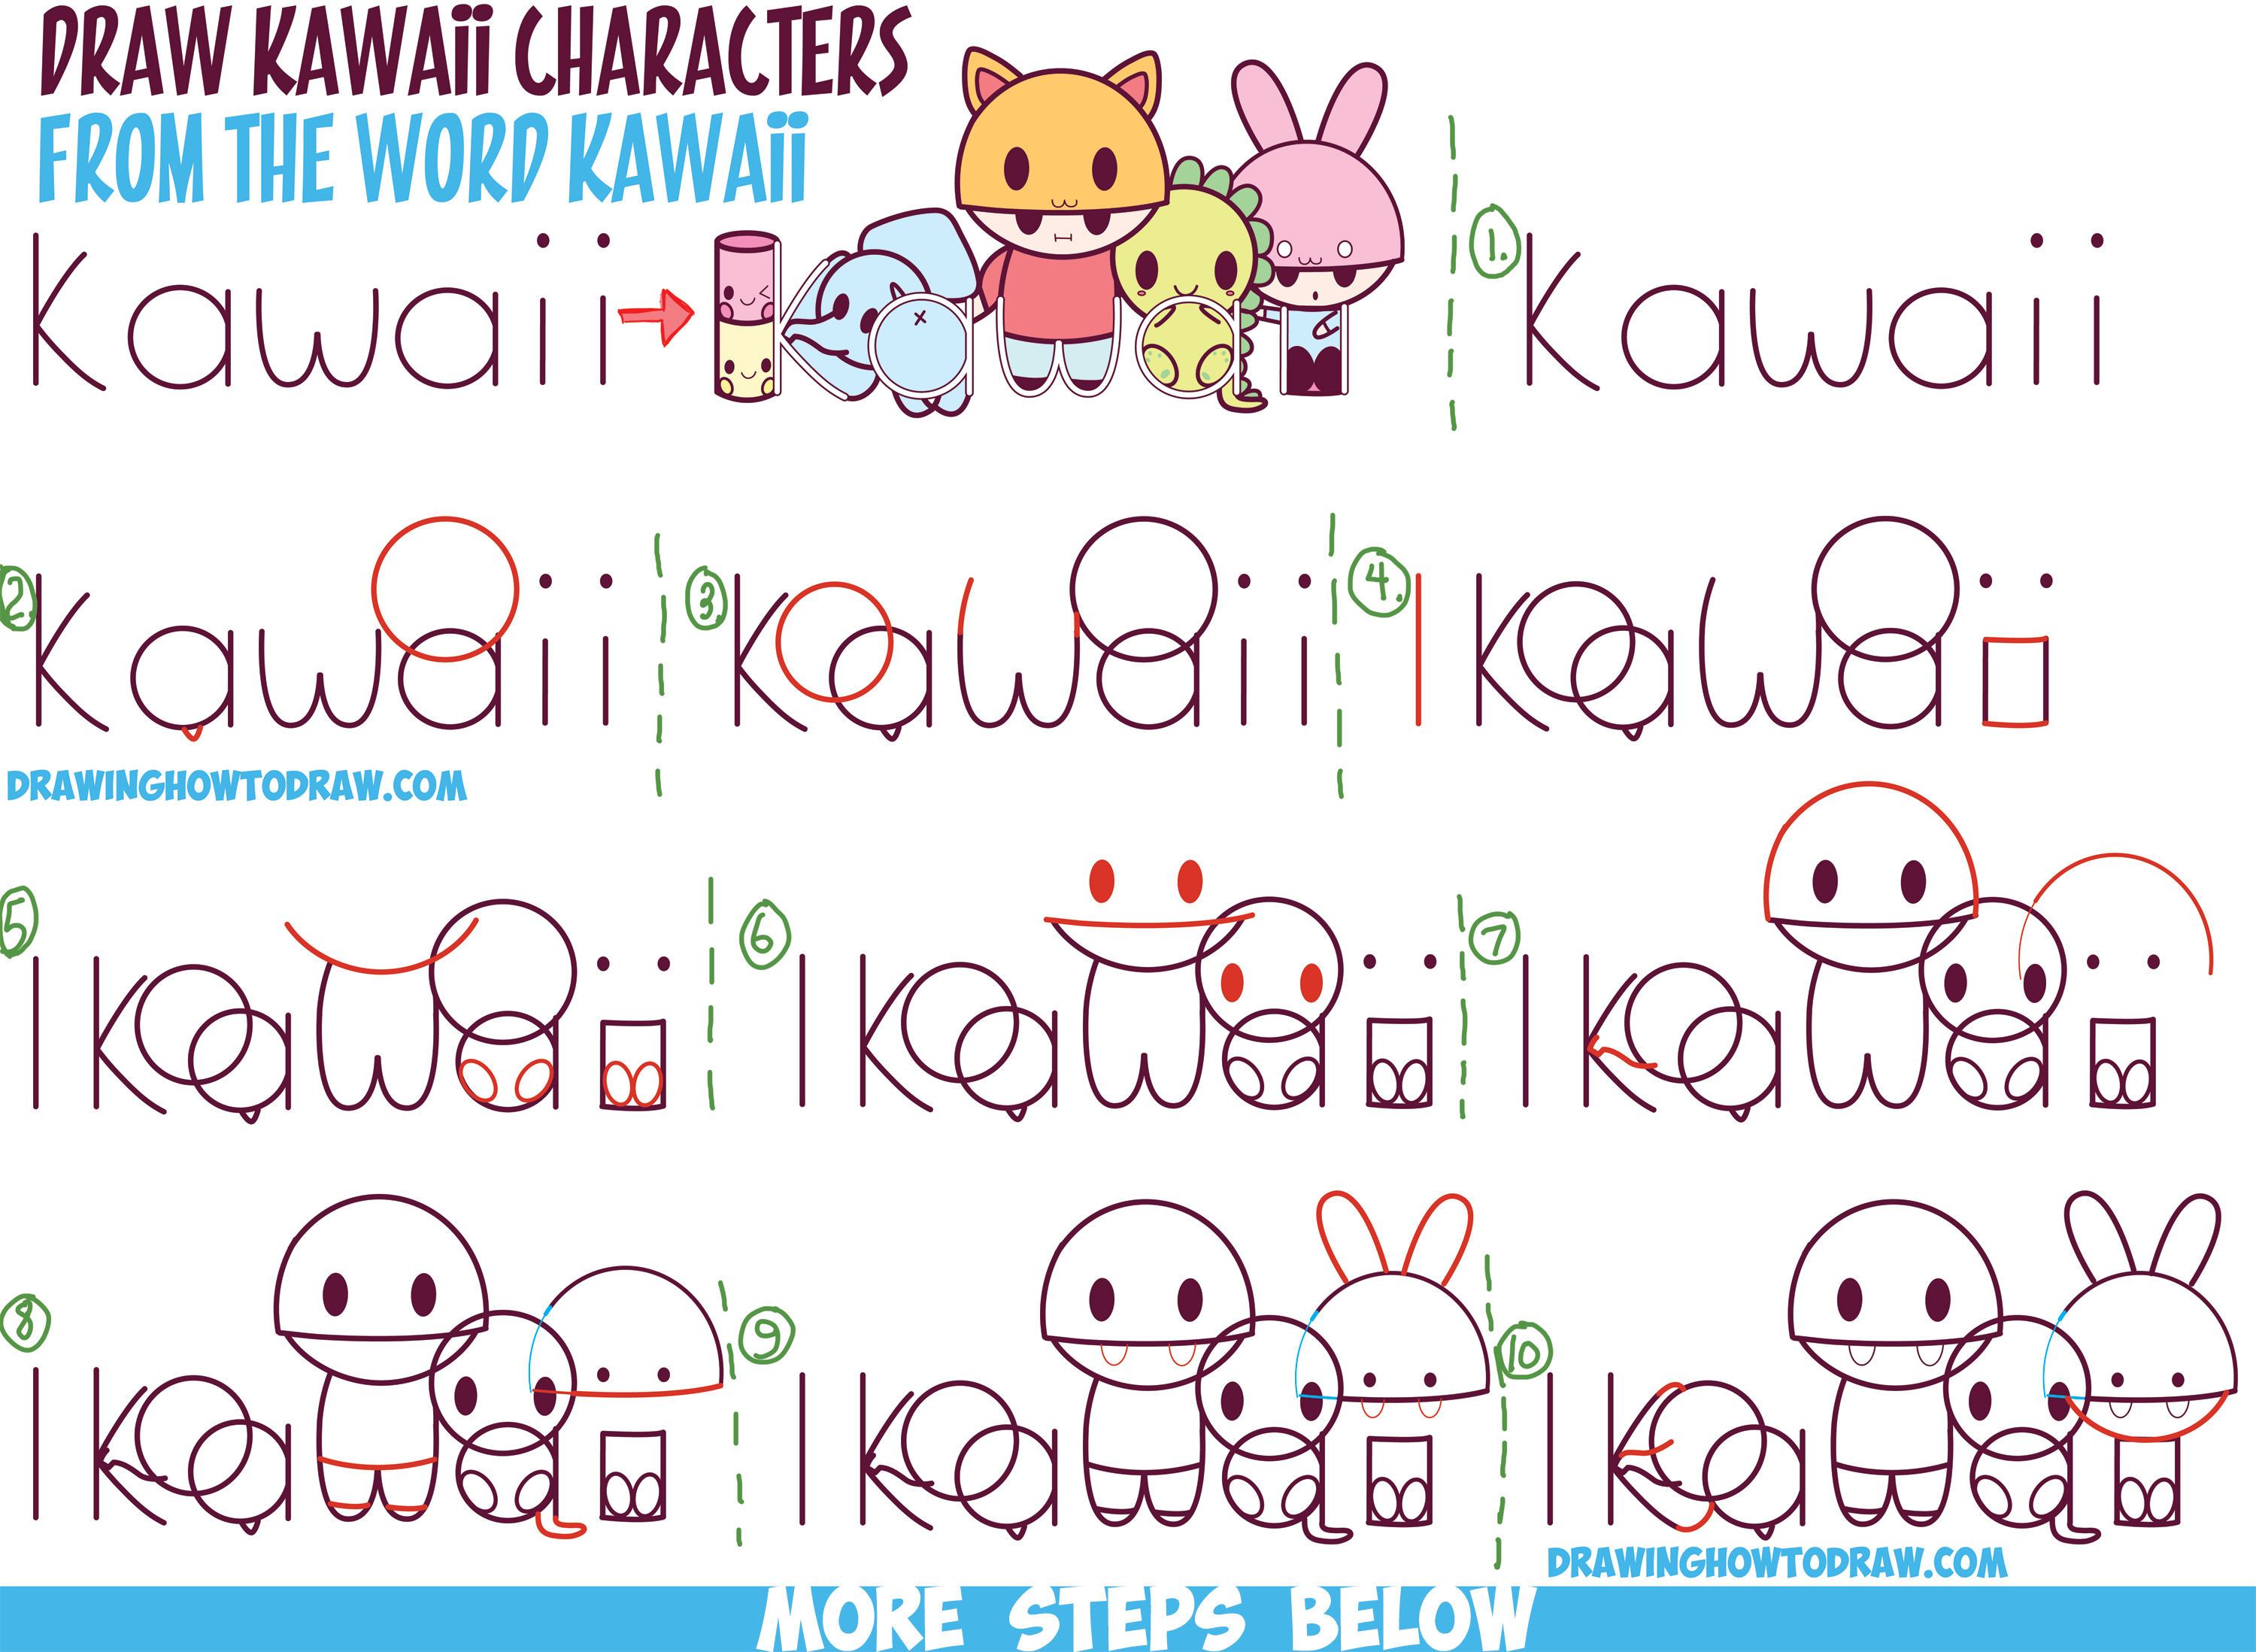 "How to Draw Kawaii Characters, Animals, and People from the Word ""Kawaii"" Easy Step by Step Drawing Tutorial for Kids"